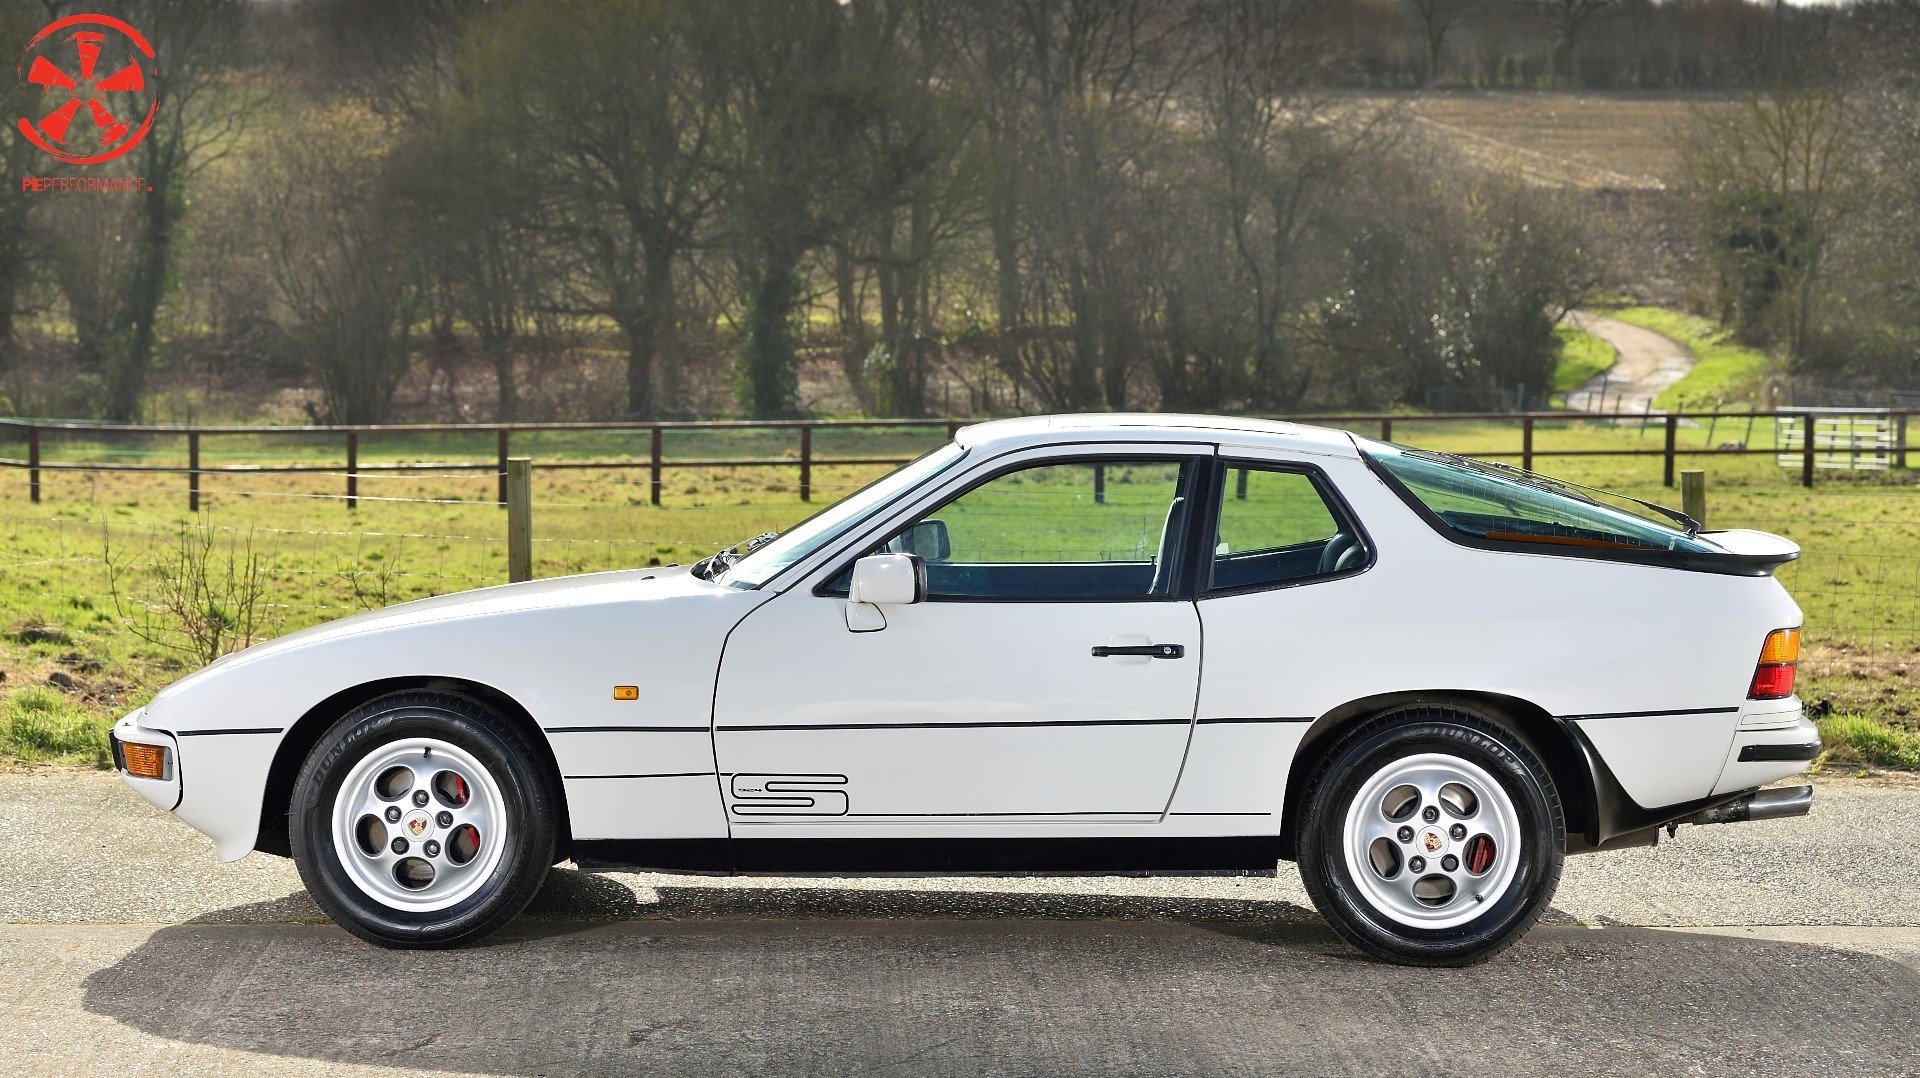 1988 Porsche 924S 2.5 Manual For Sale (picture 3 of 6)